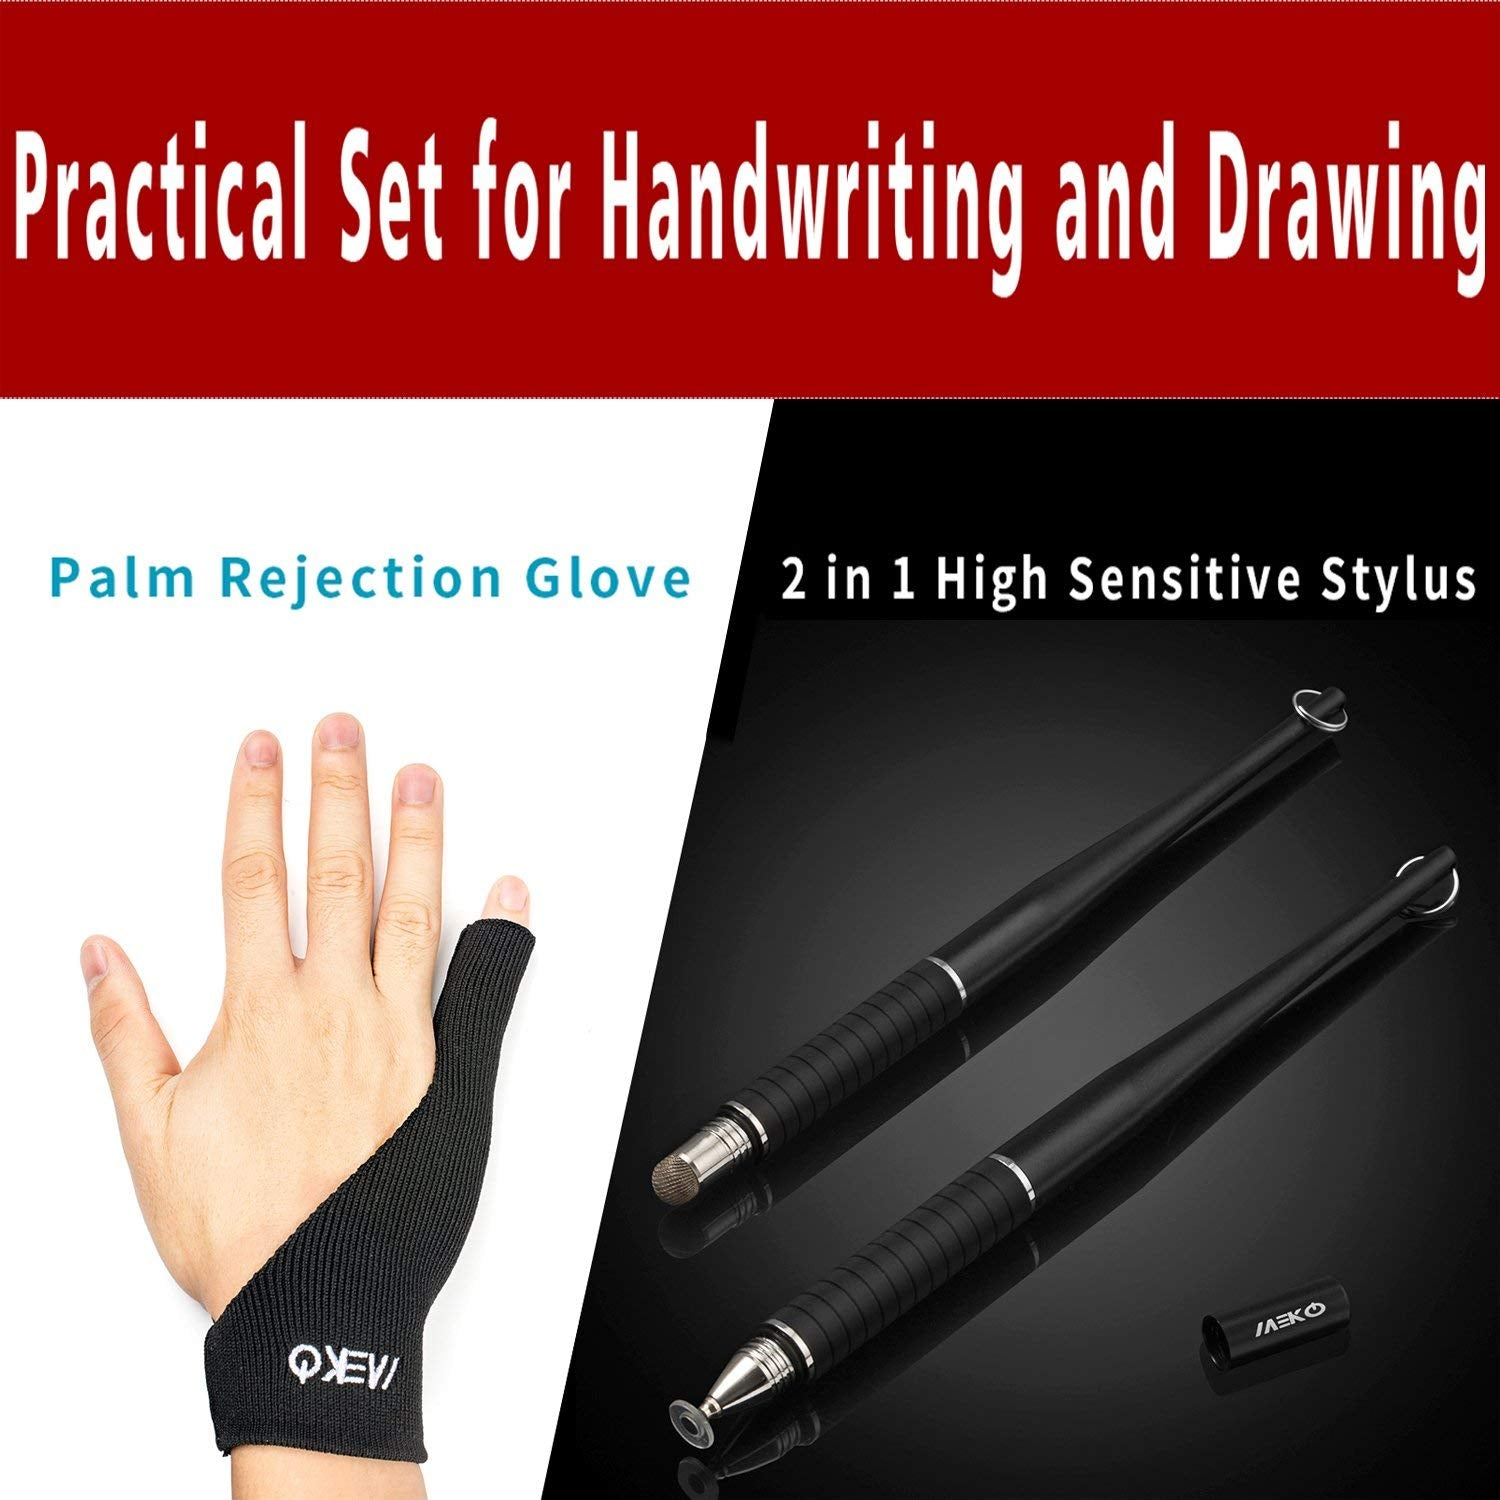 Stylus Pens with Anti-fouling Palm Rejection Artist Glove